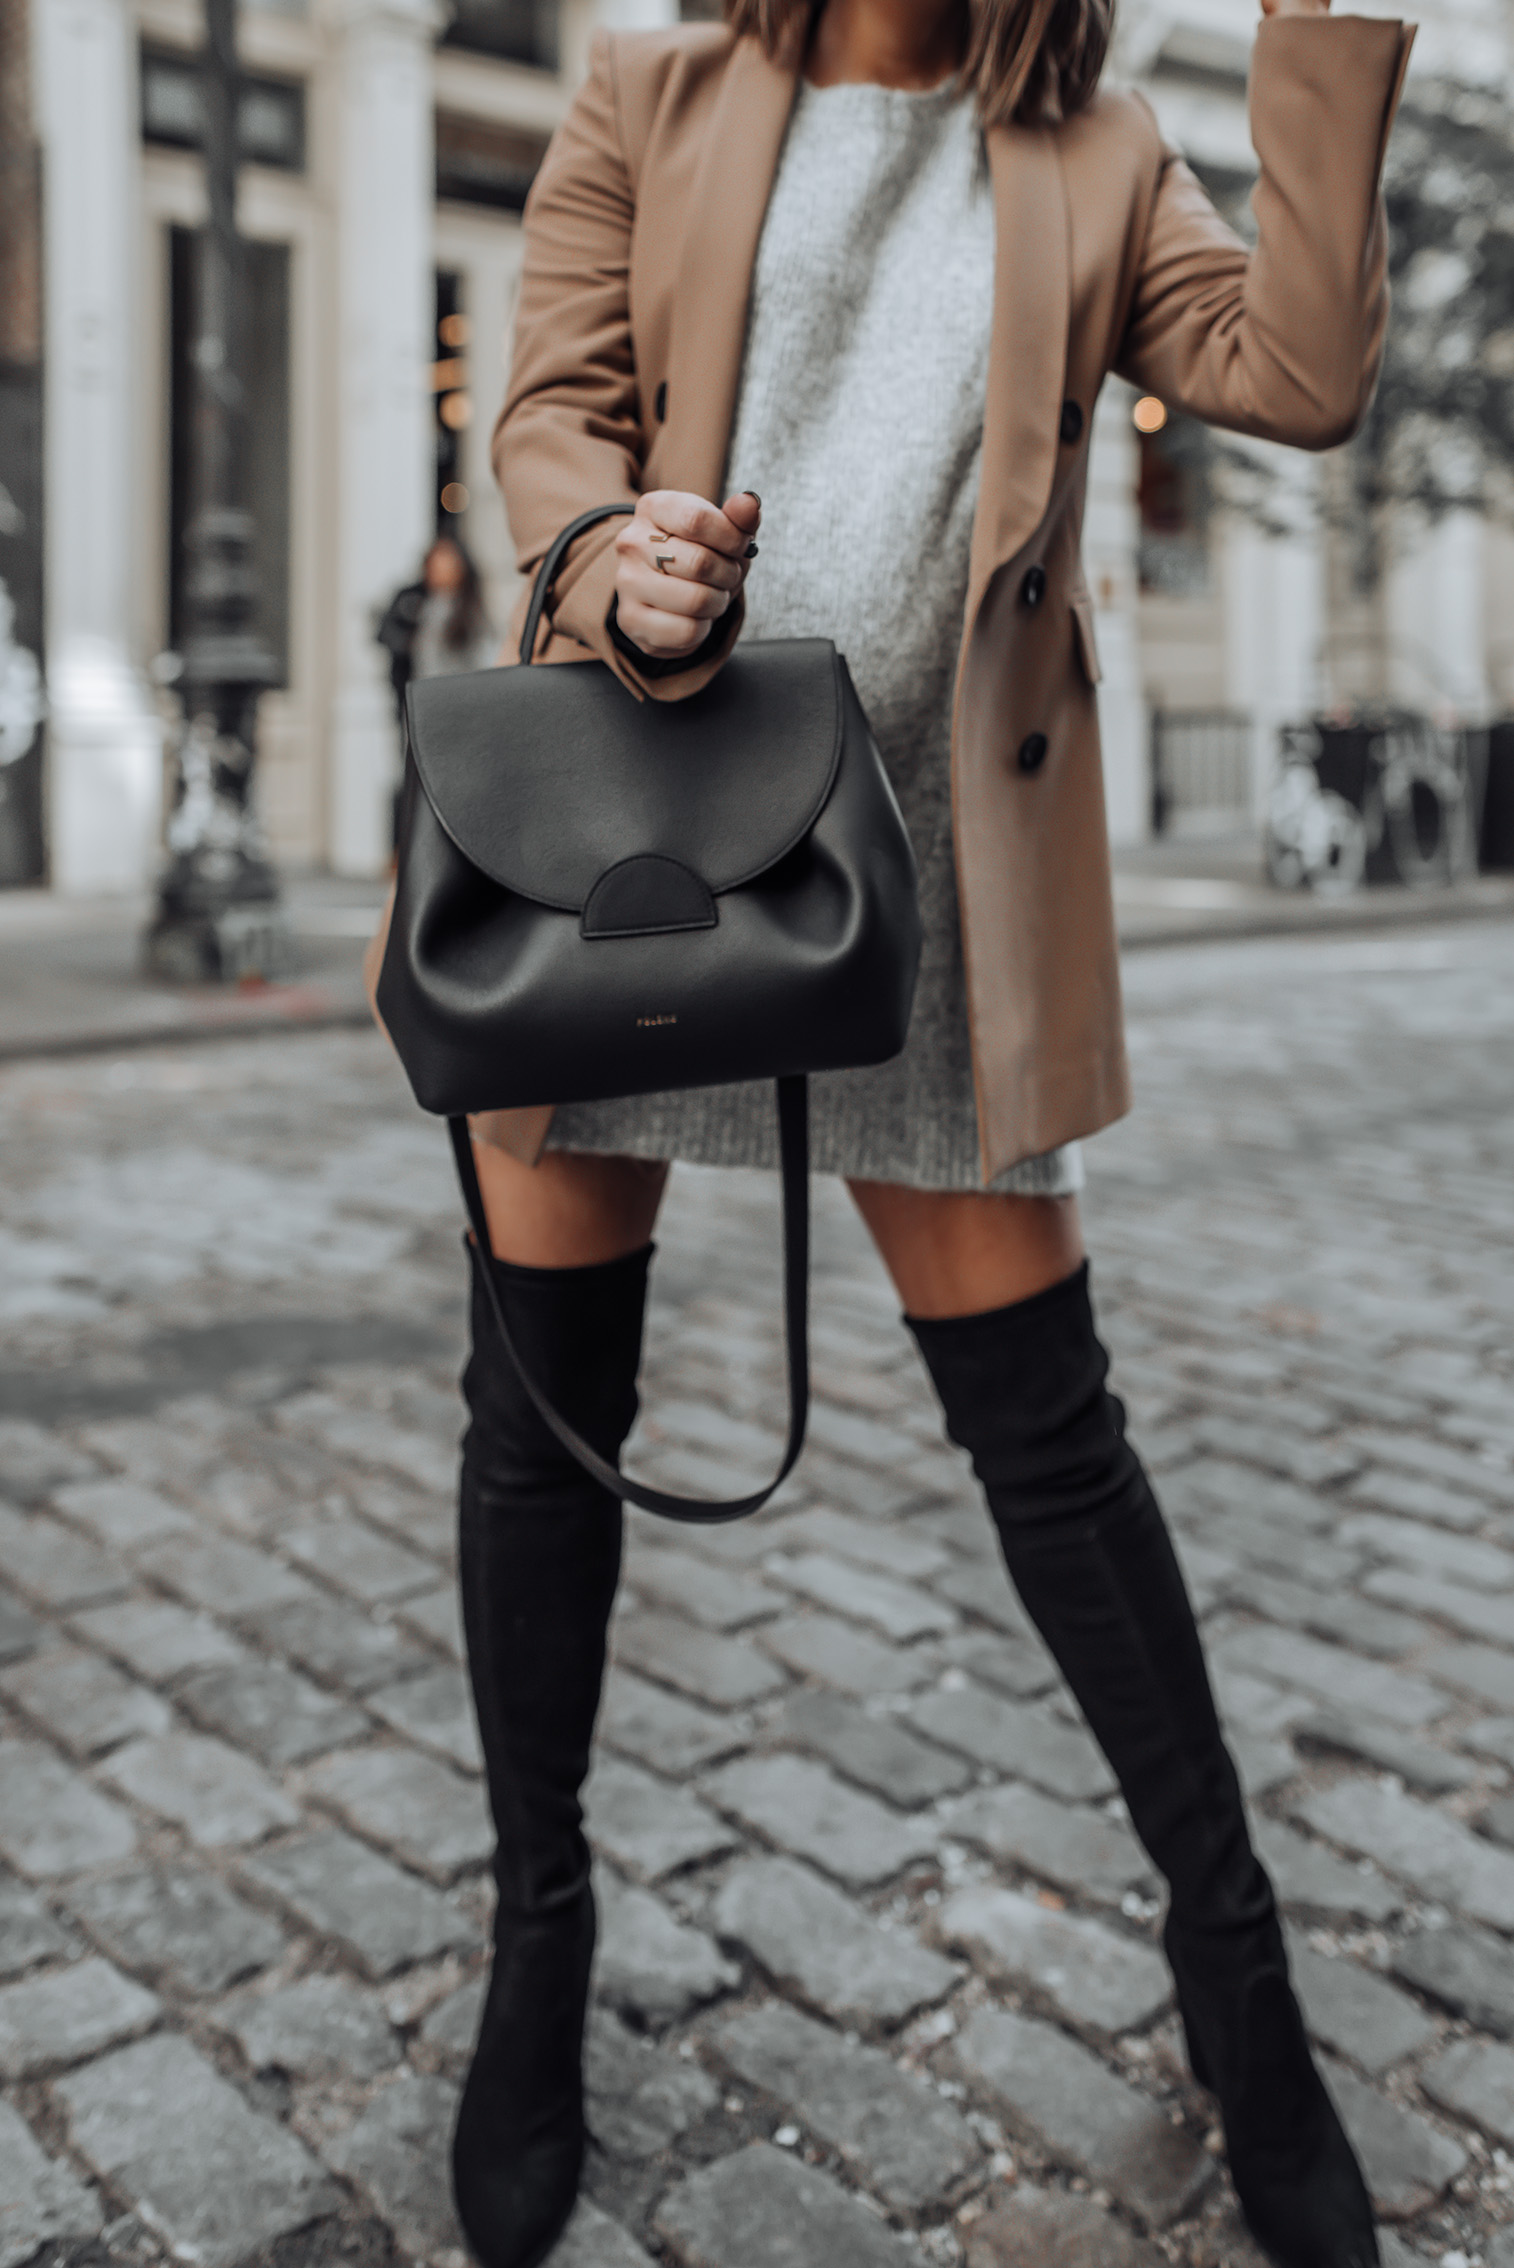 Grey and camel |Grey Sweater | Stuart Weitzman Funland (similar) | Zara Blazer (similar)  | Bag C/O  Polene Paris #streetstyle #nycblog #sohonyc #travel